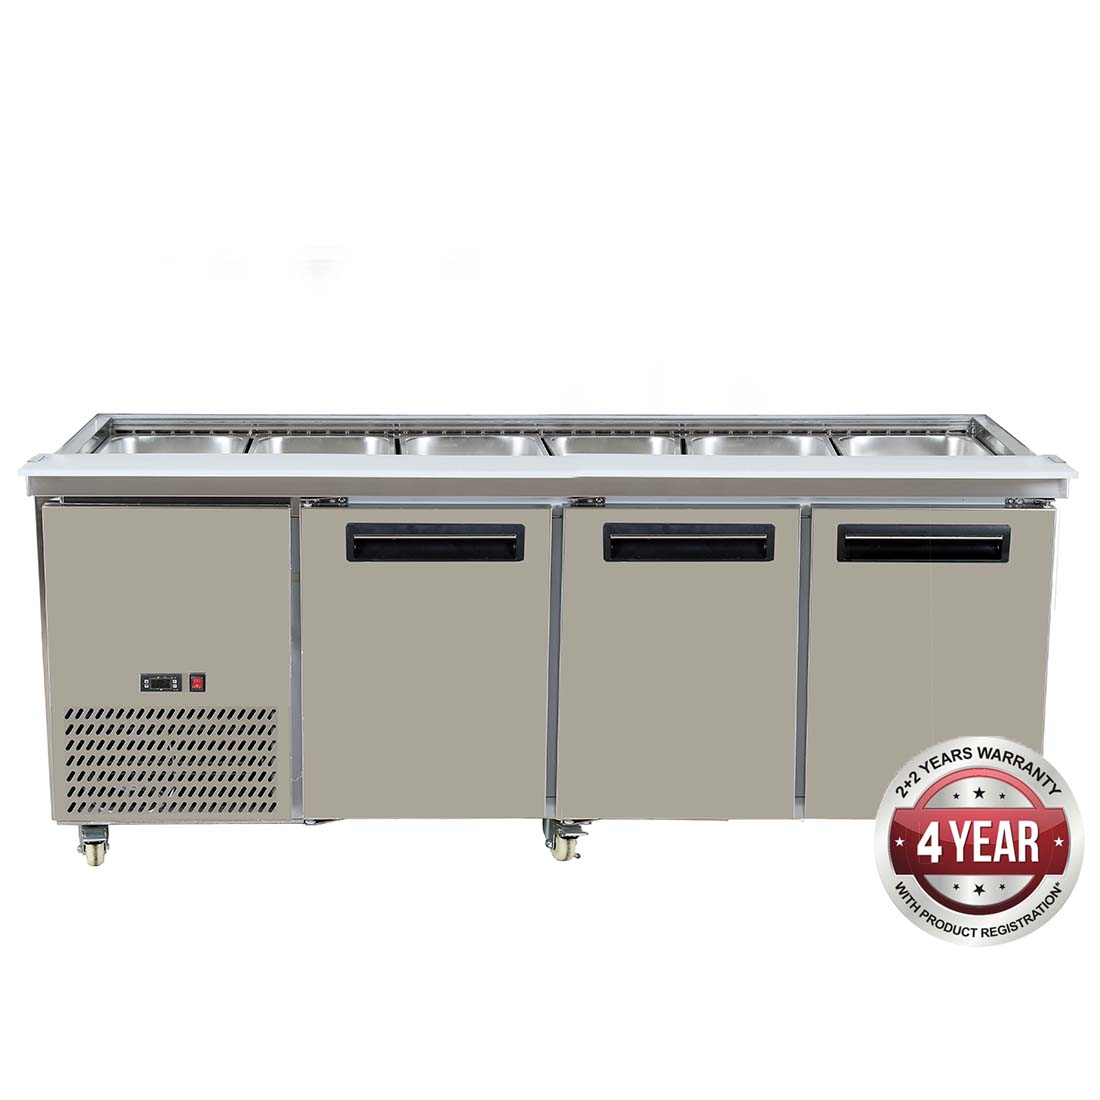 PG210FA-B Bench Station Three Door - 6× 1/1 GN Pans